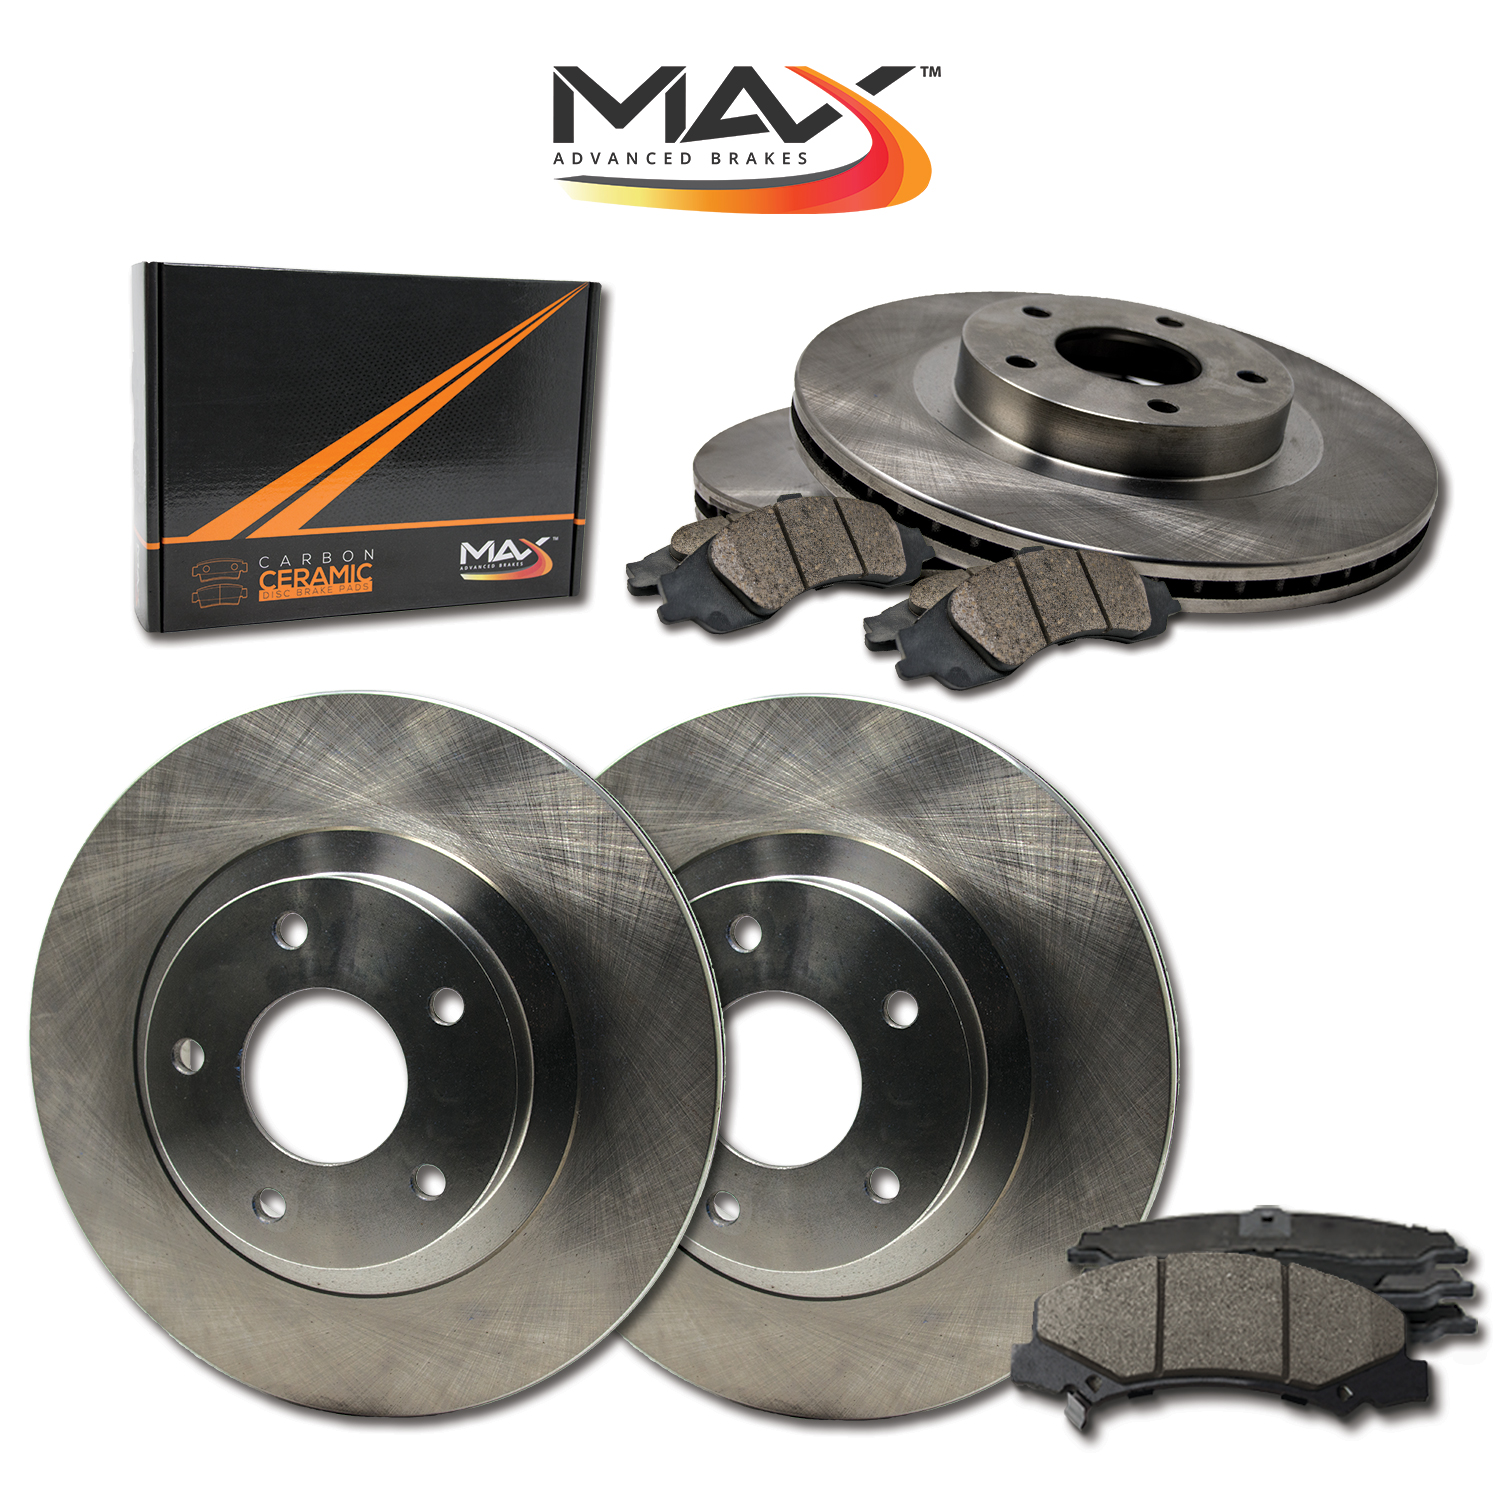 Max Brakes Rear Carbon Ceramic Performance Disc Brake Pads KT016952 Fits 2003 03 Subaru Impreza w//Rear Disc Brakes